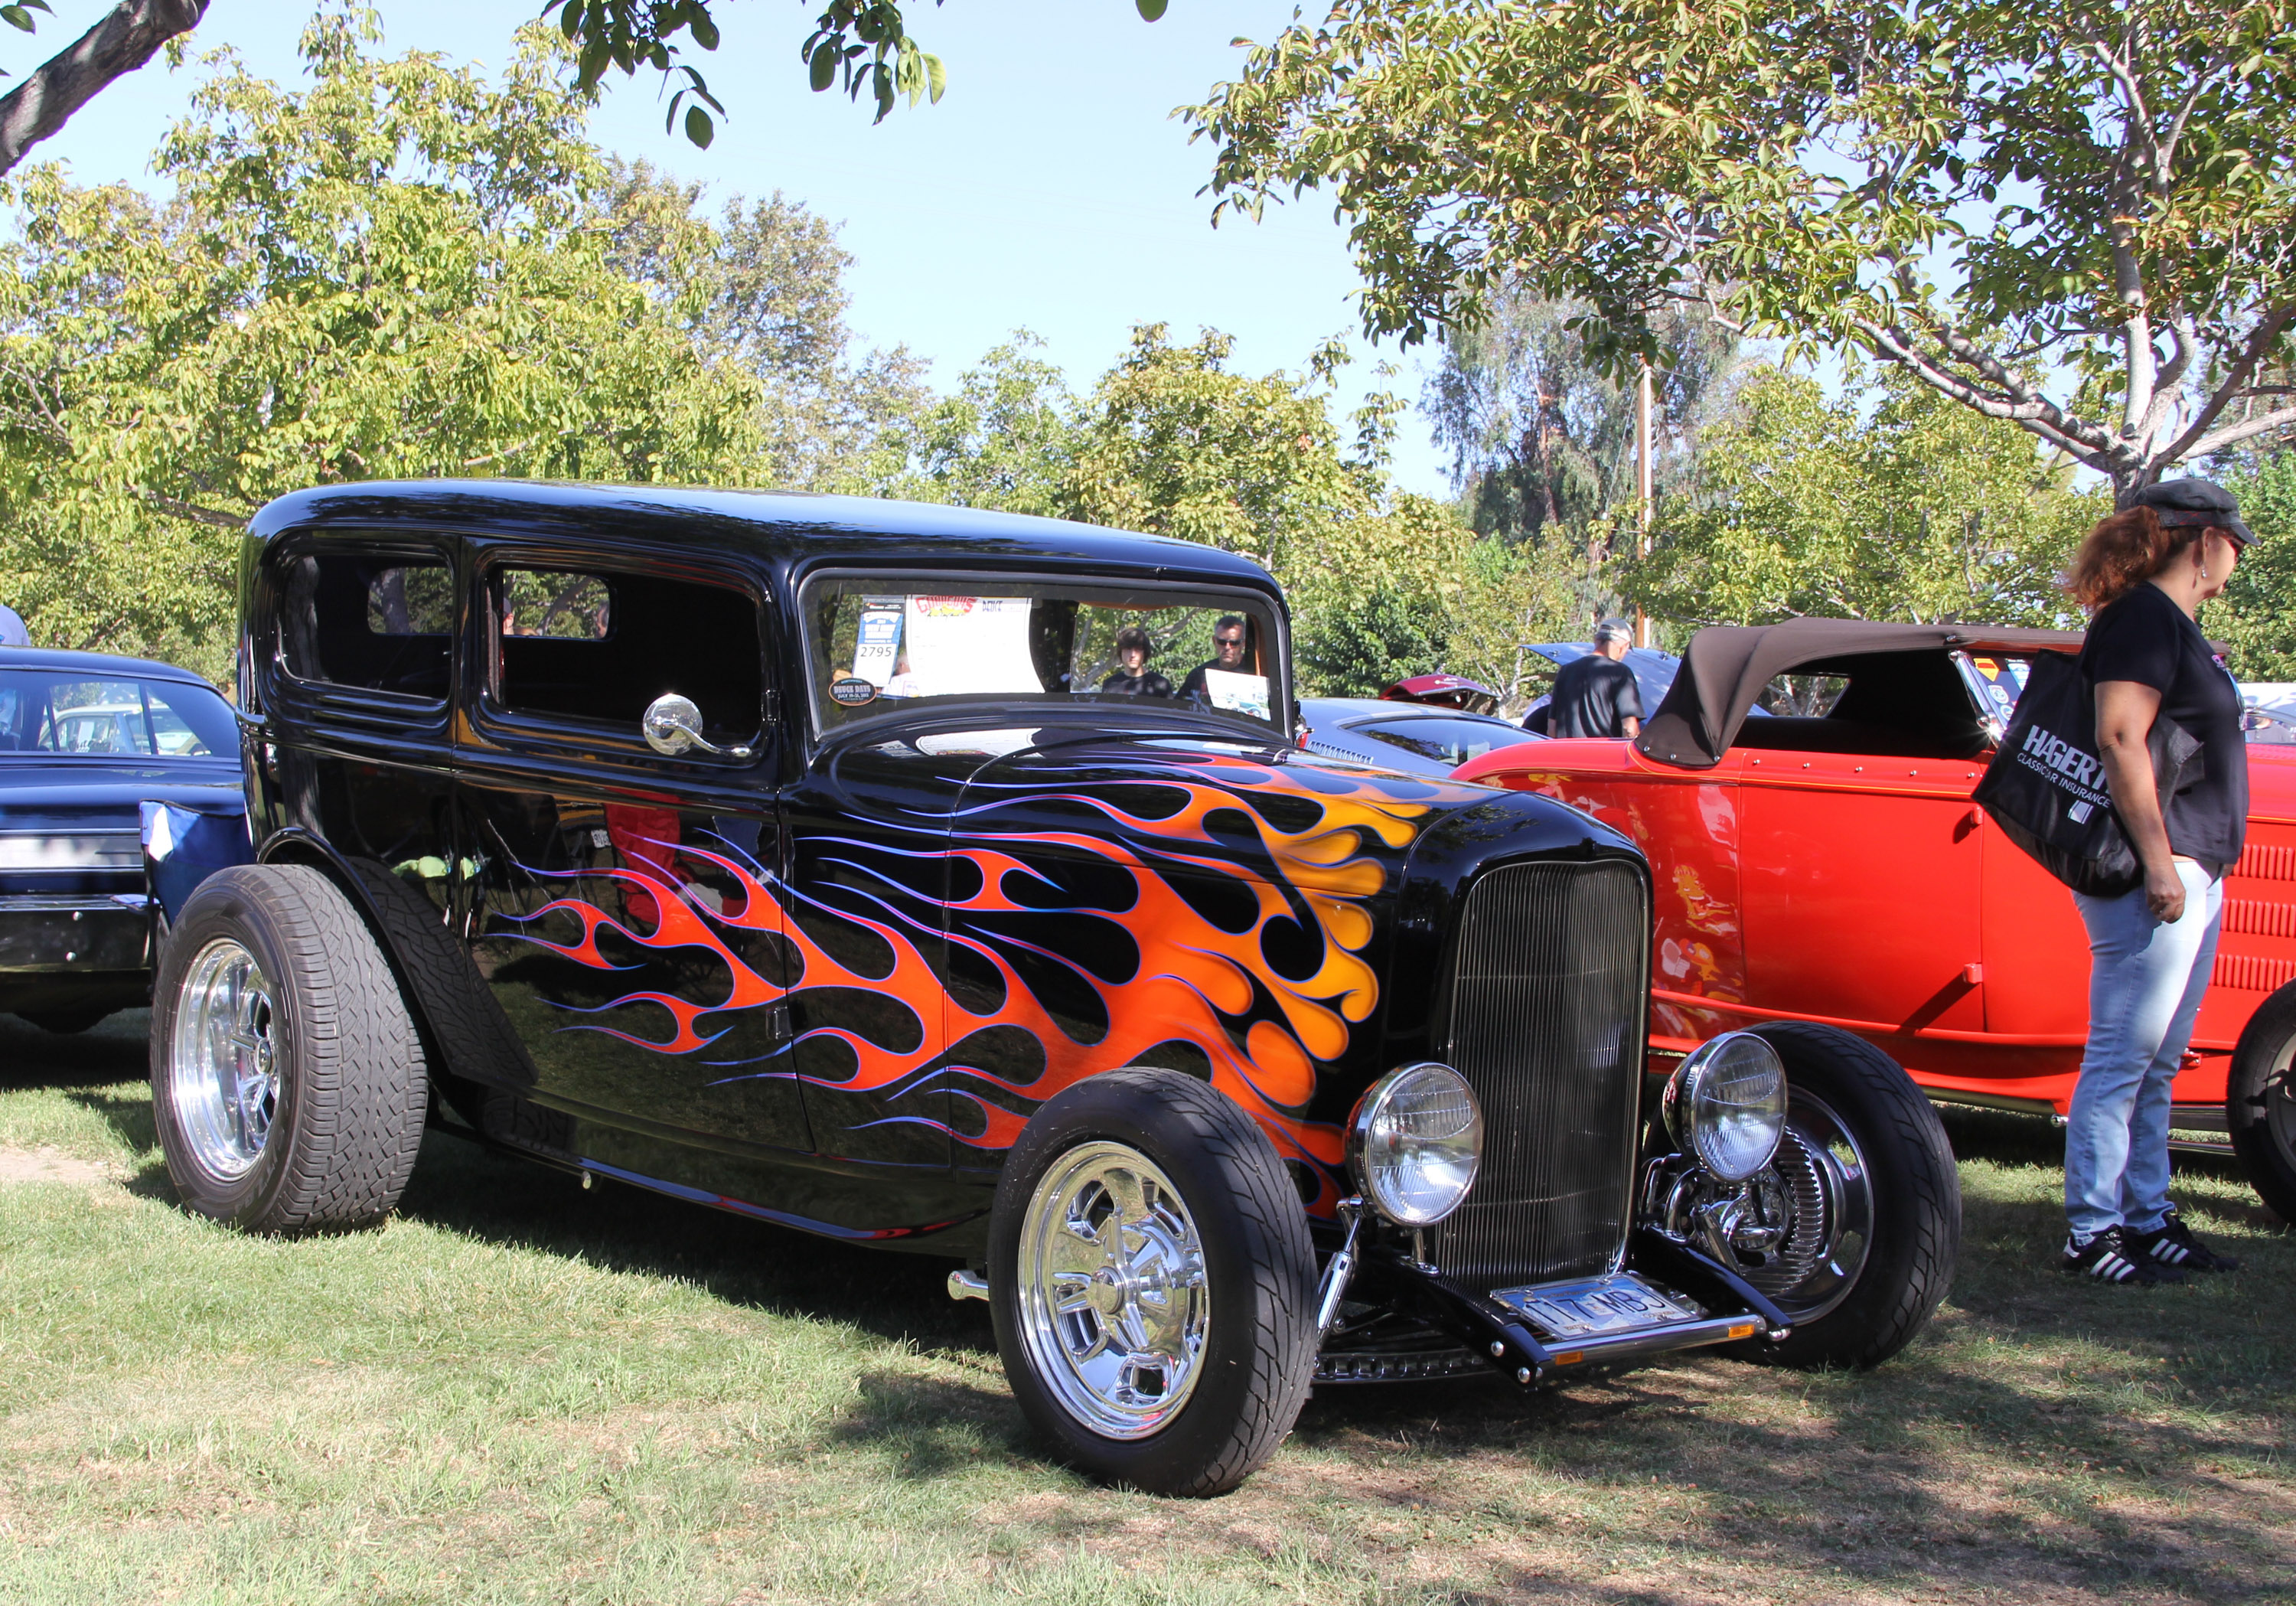 Flaming hot rod